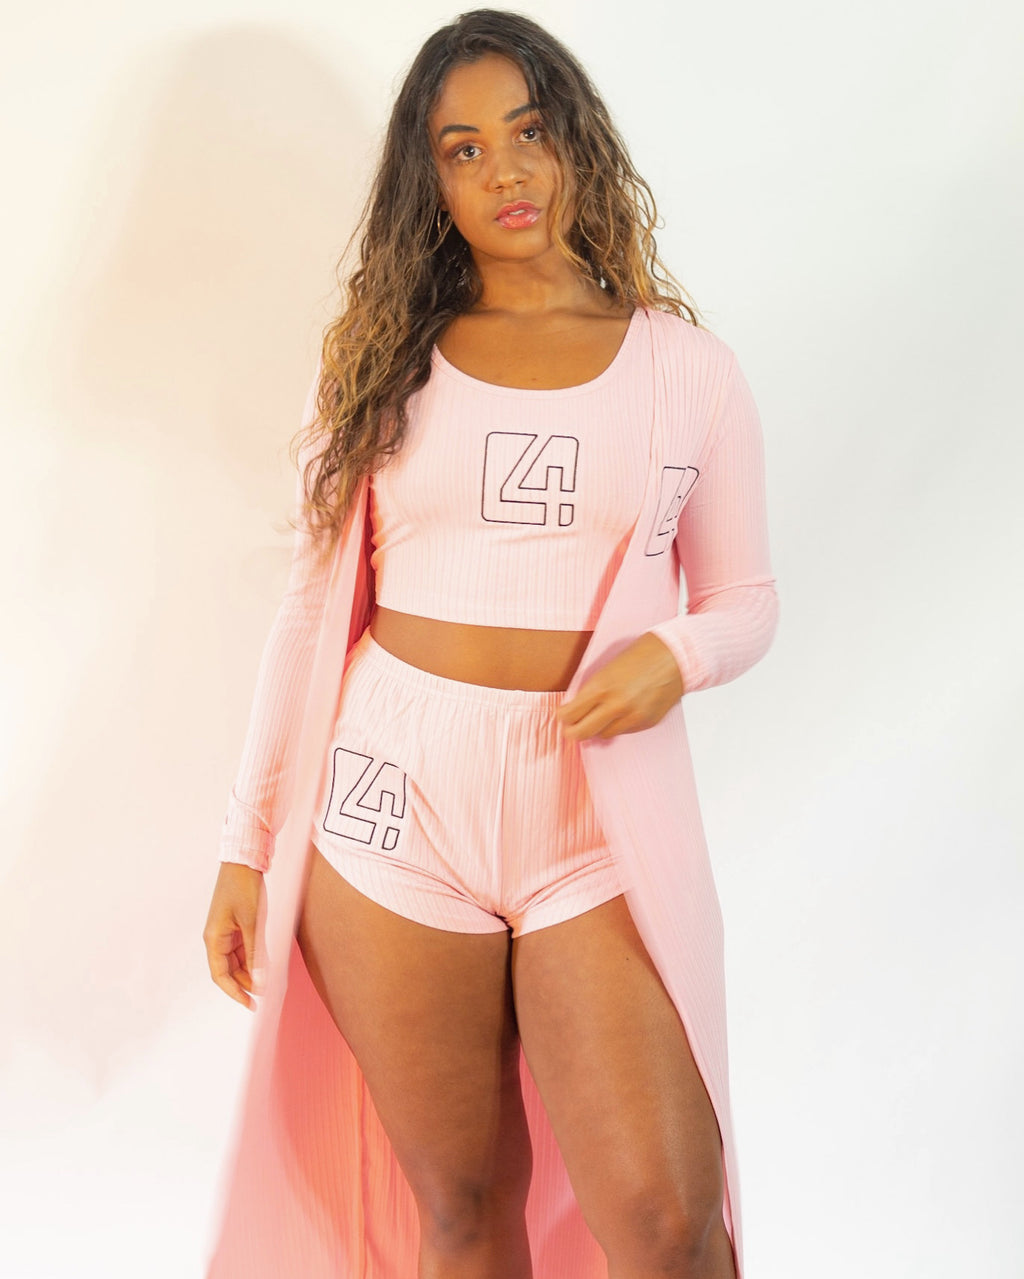 4TC Pink Launderette Wear